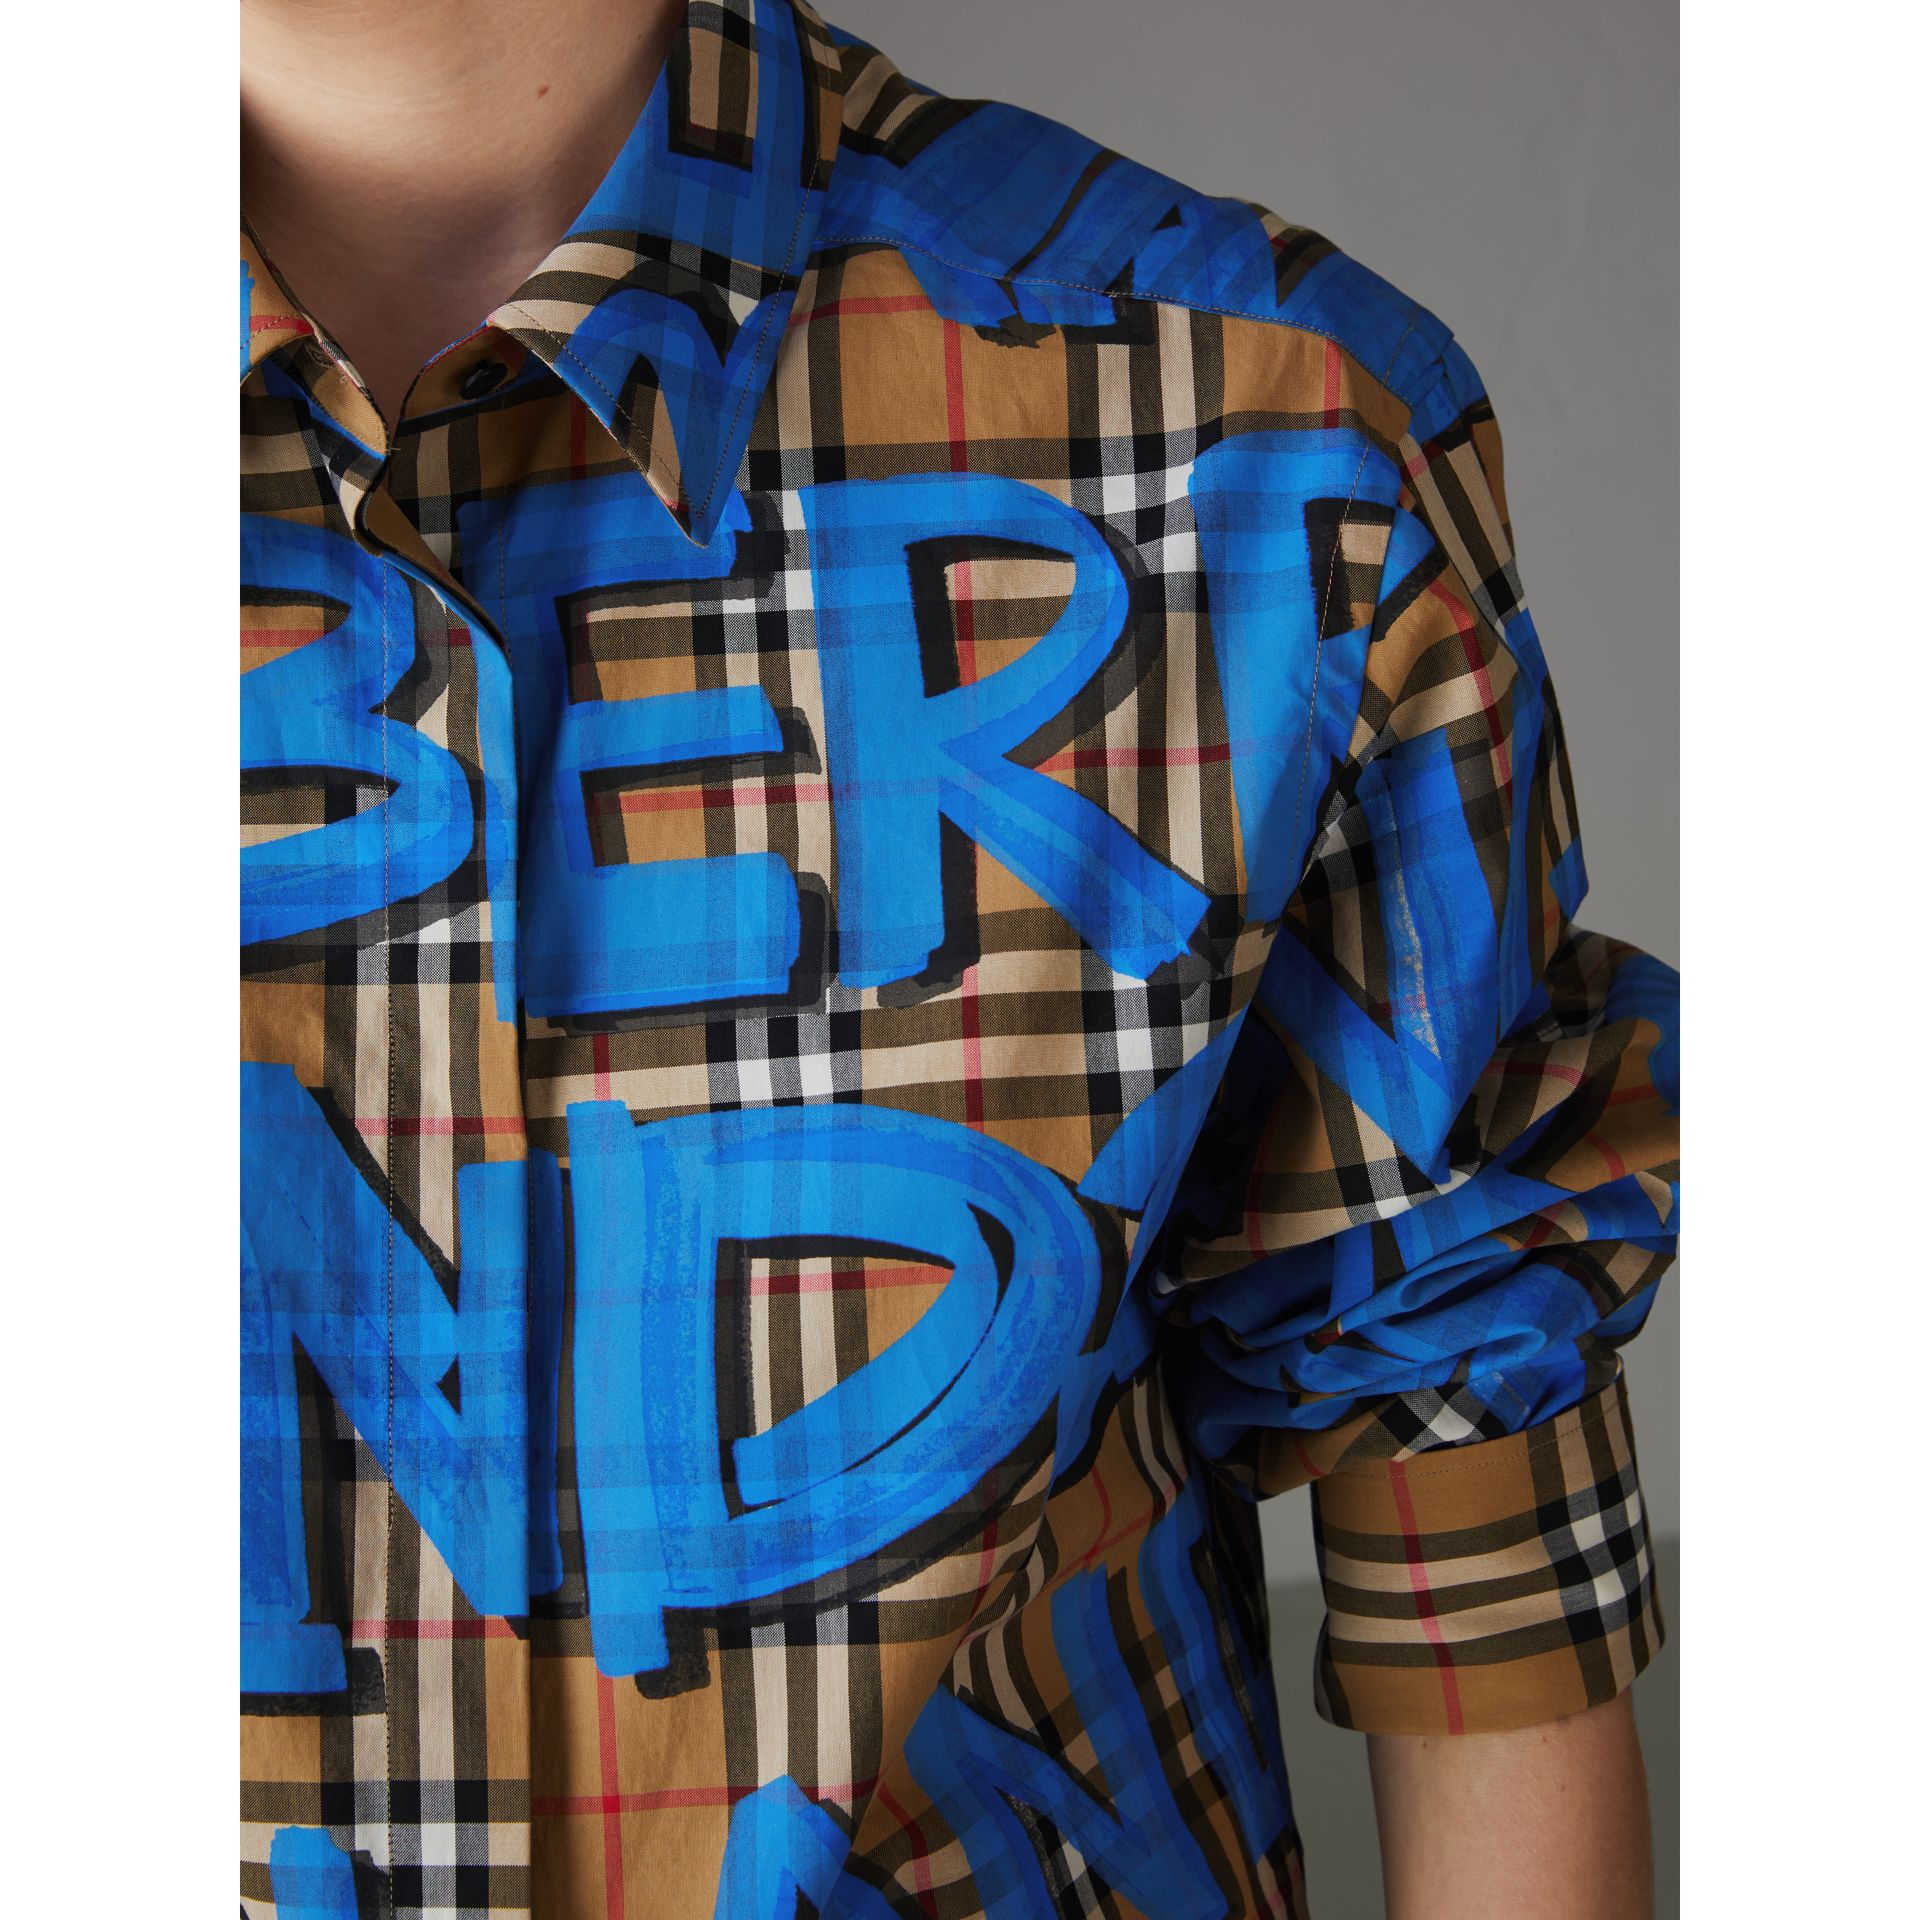 Graffiti Print Vintage Check Cotton Shirt in Bright Blue - Women | Burberry United Kingdom - gallery image 1